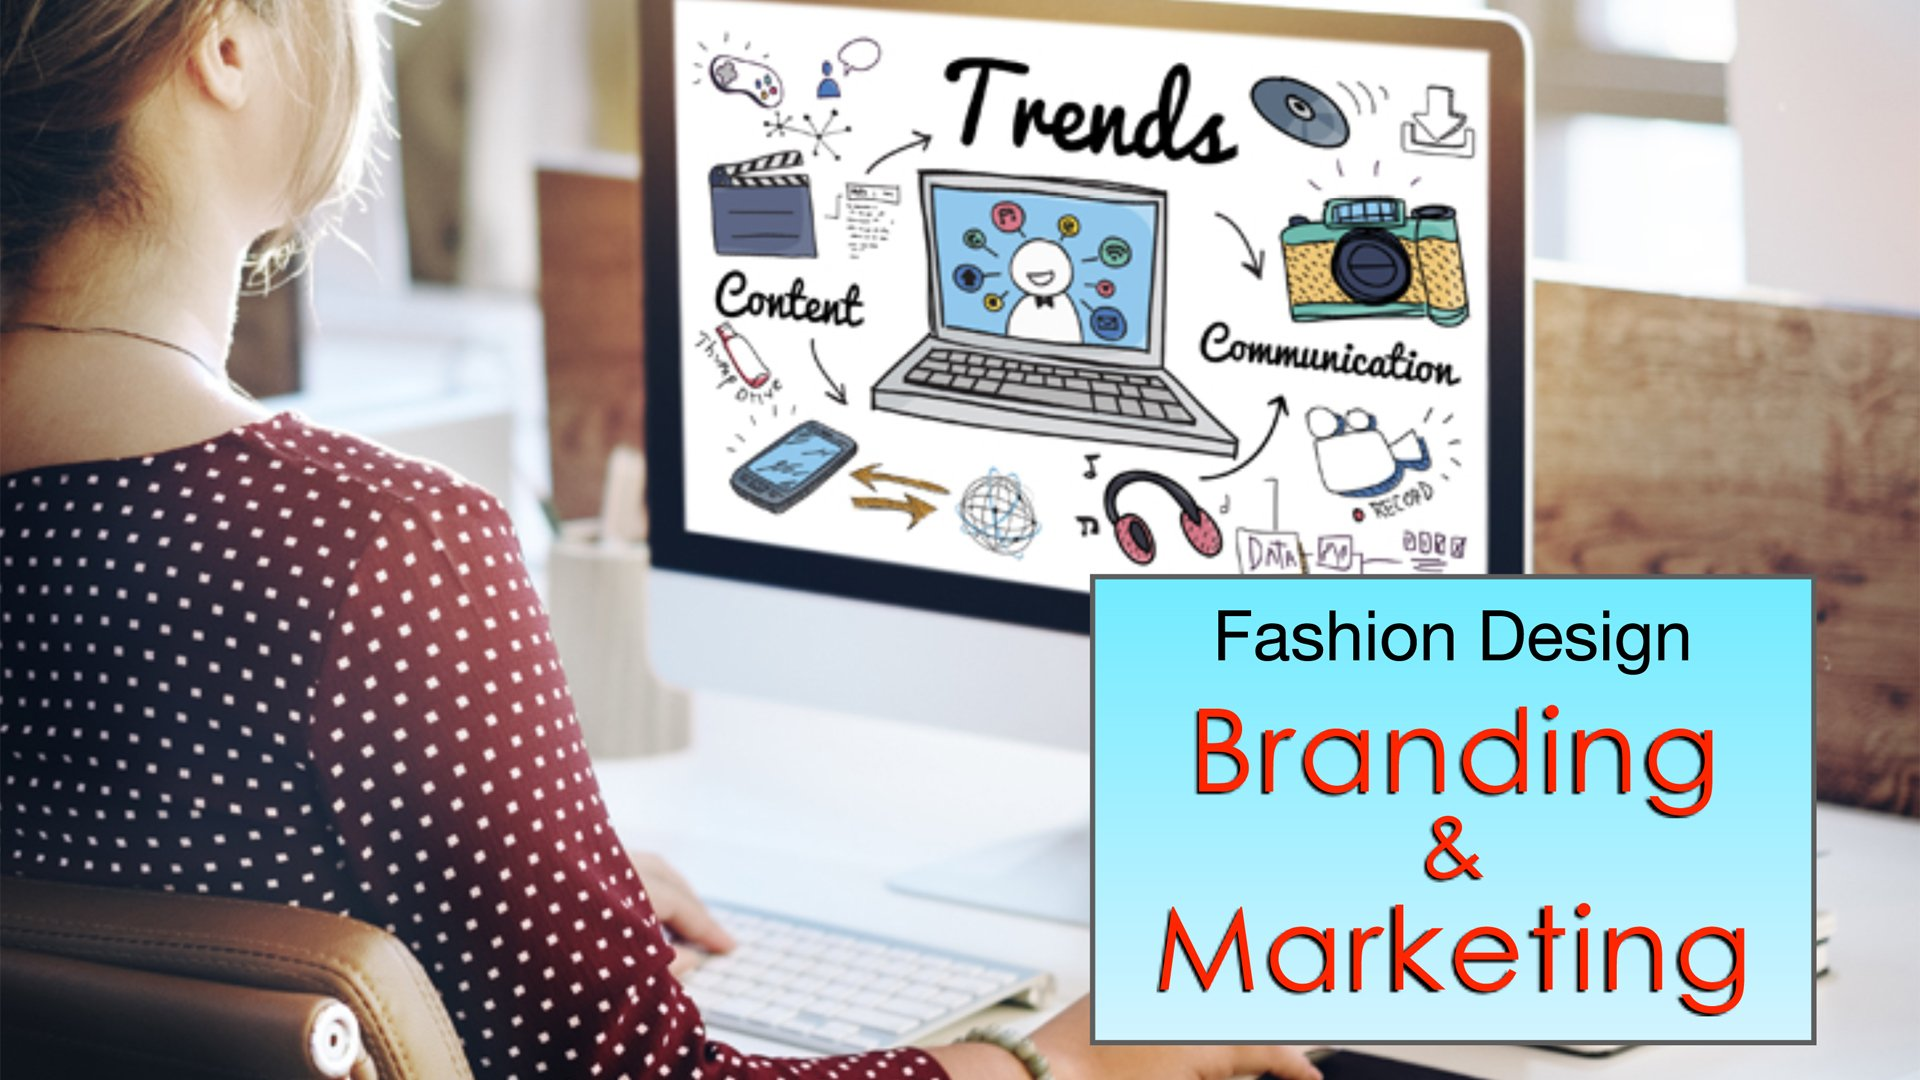 How To Promote A Fashion Brand Fashion Marketing Strategies For Promoting Branding Your Designs Nino Via Skillshare